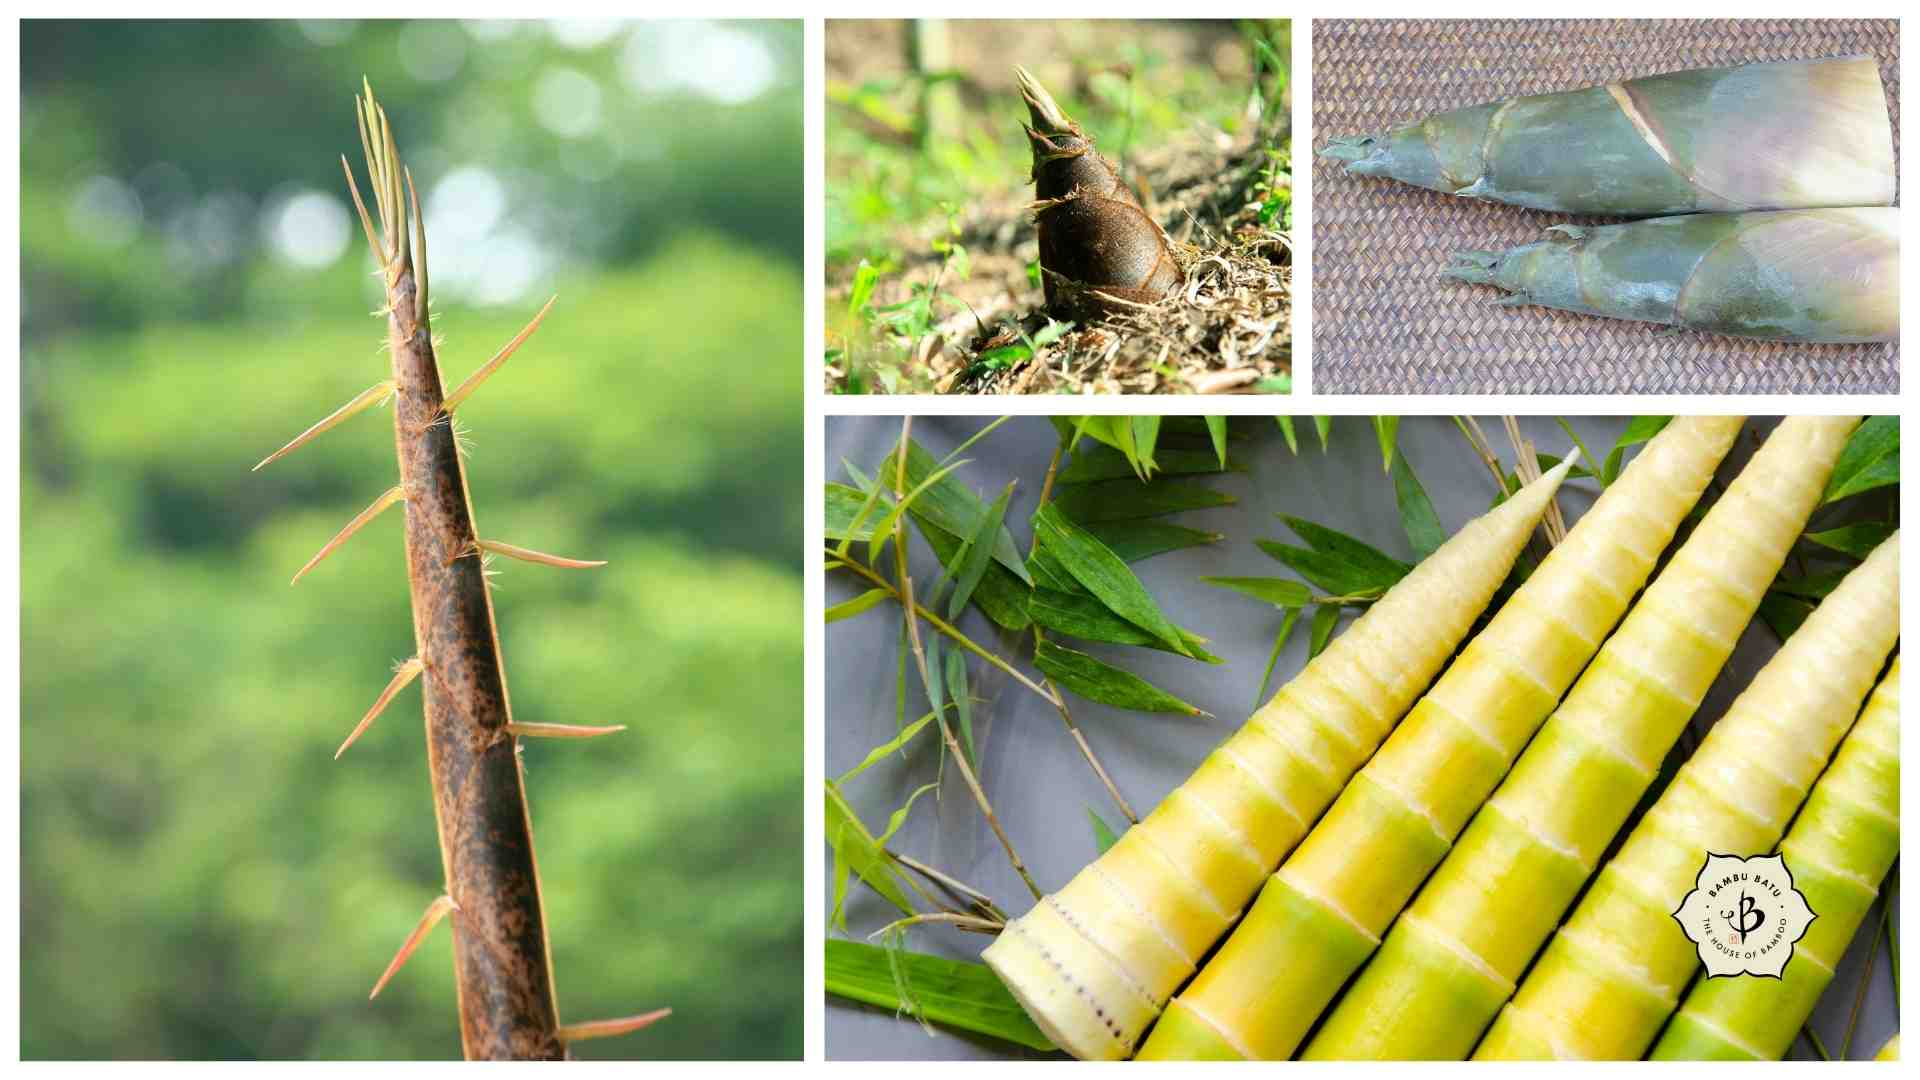 Best bamboo shoots for eating